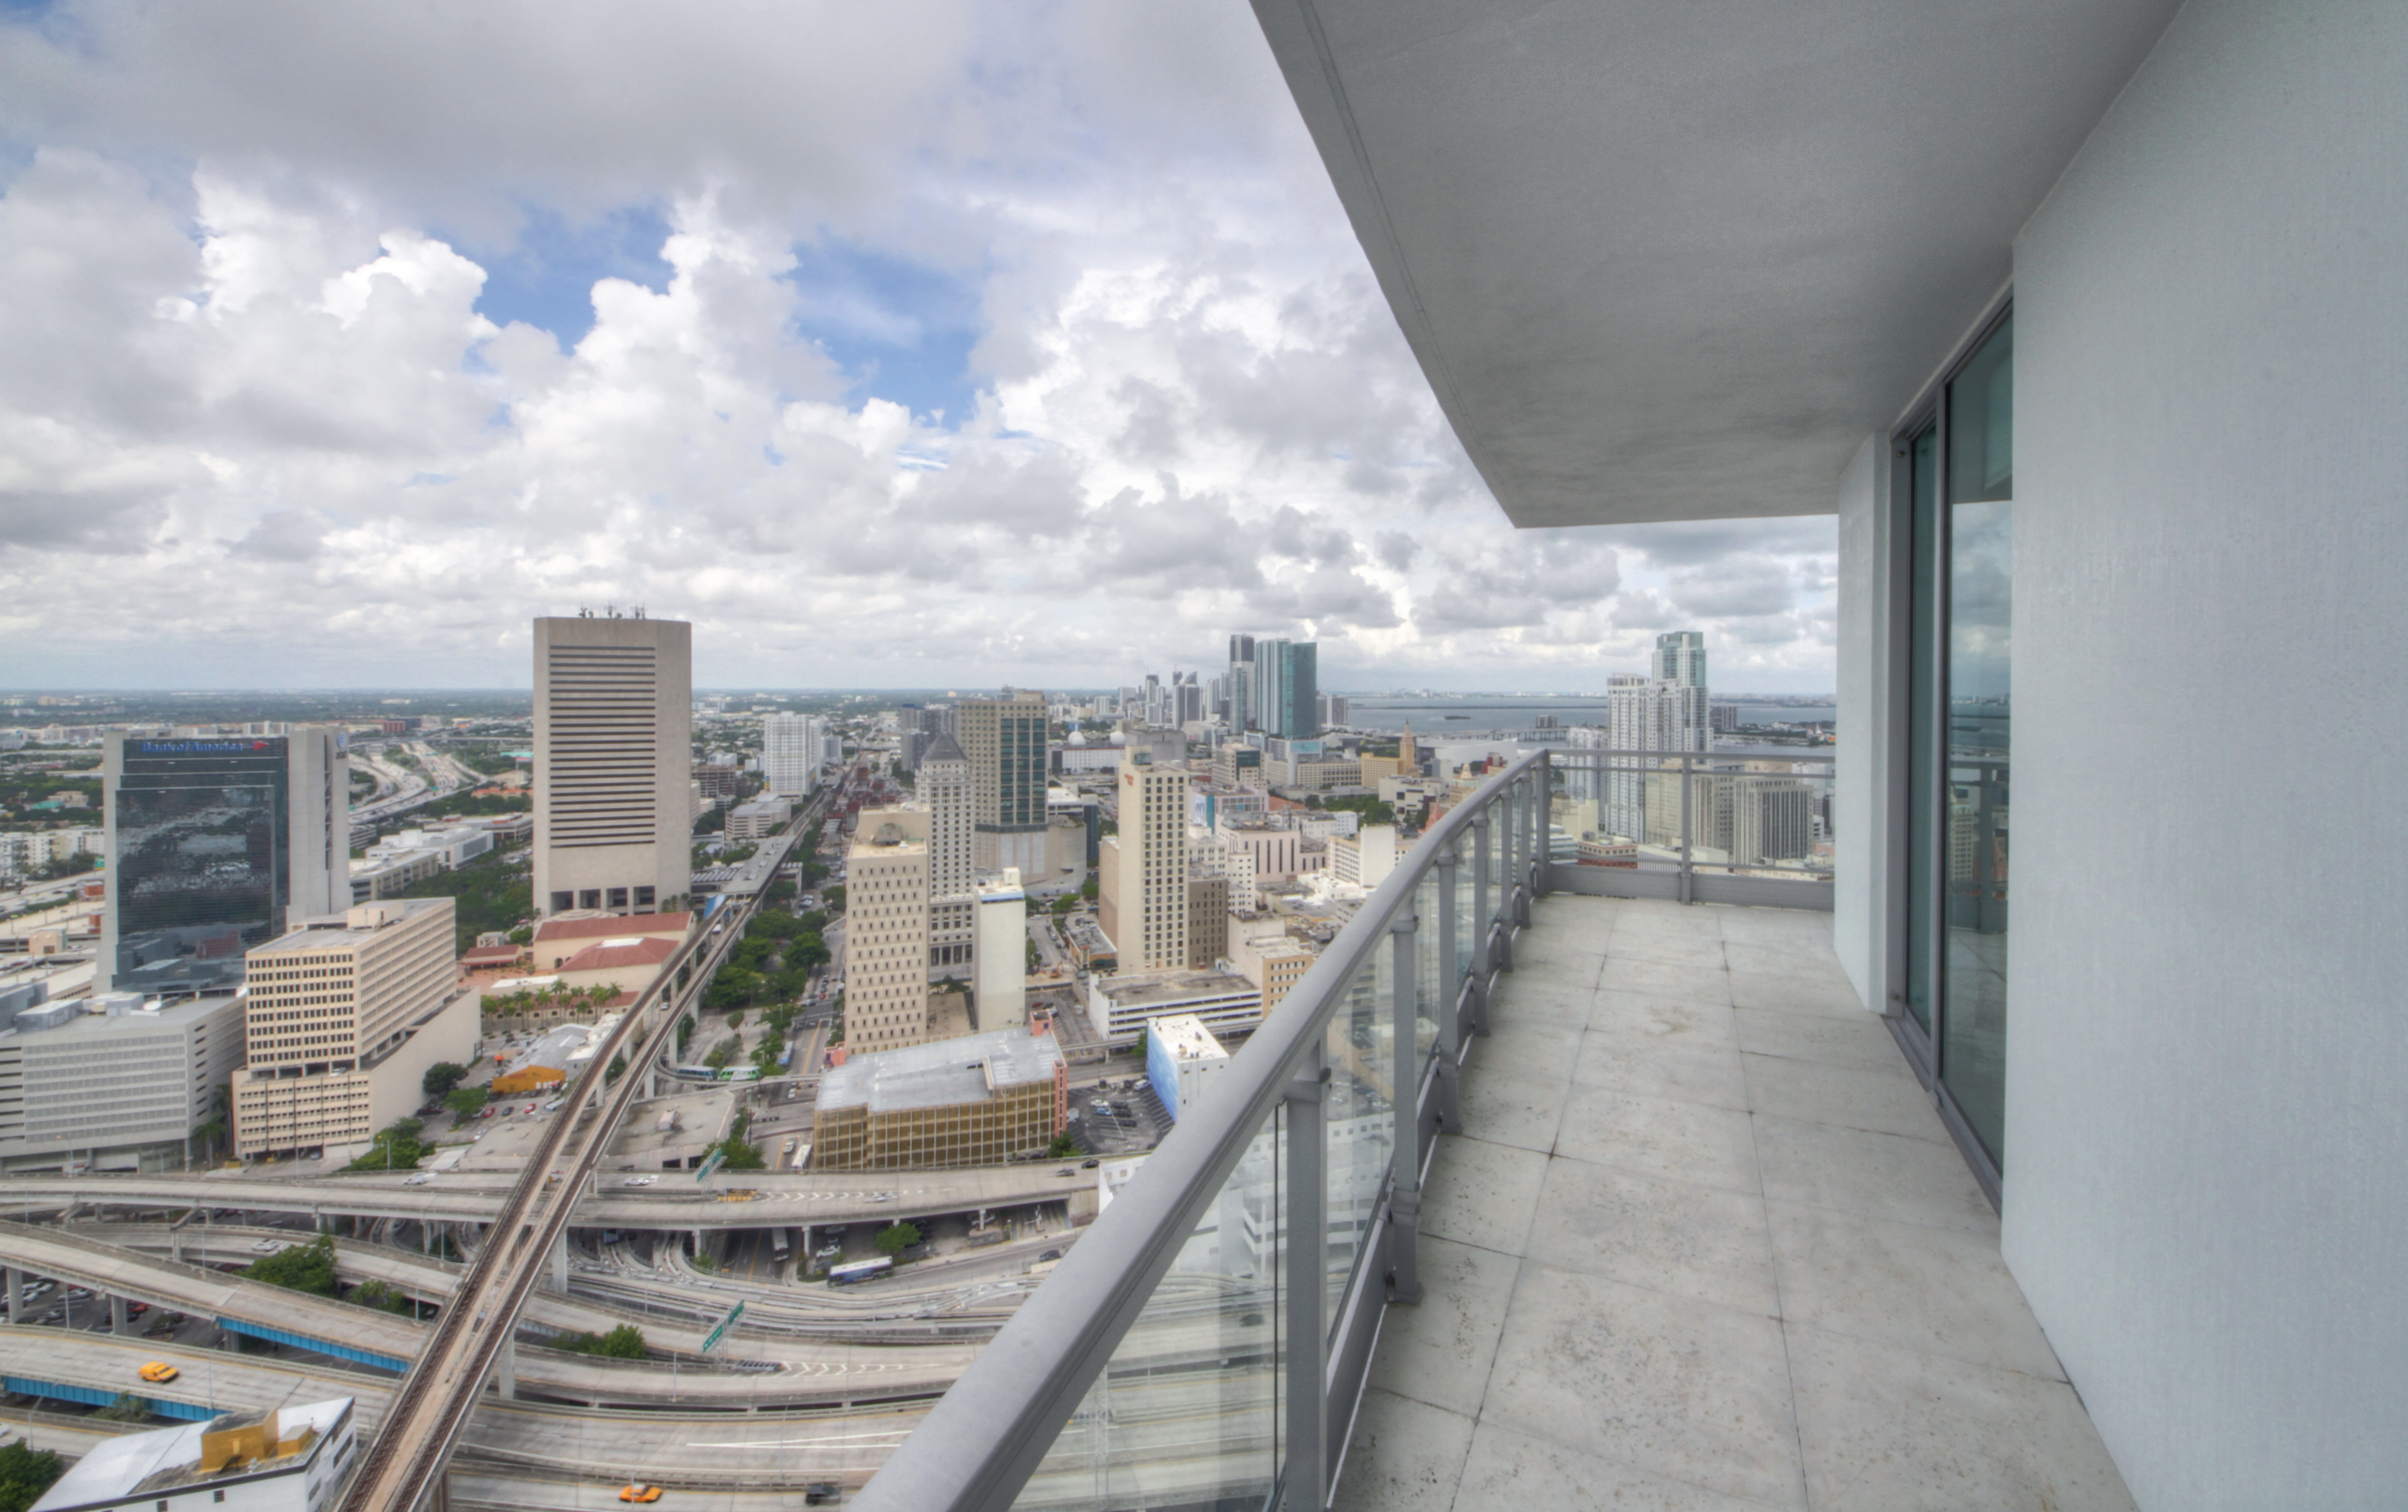 Condominium for Sale at 90 Sw 3rd St #4204 90 Sw 3rd St 4204 Miami, Florida, 33130 United States